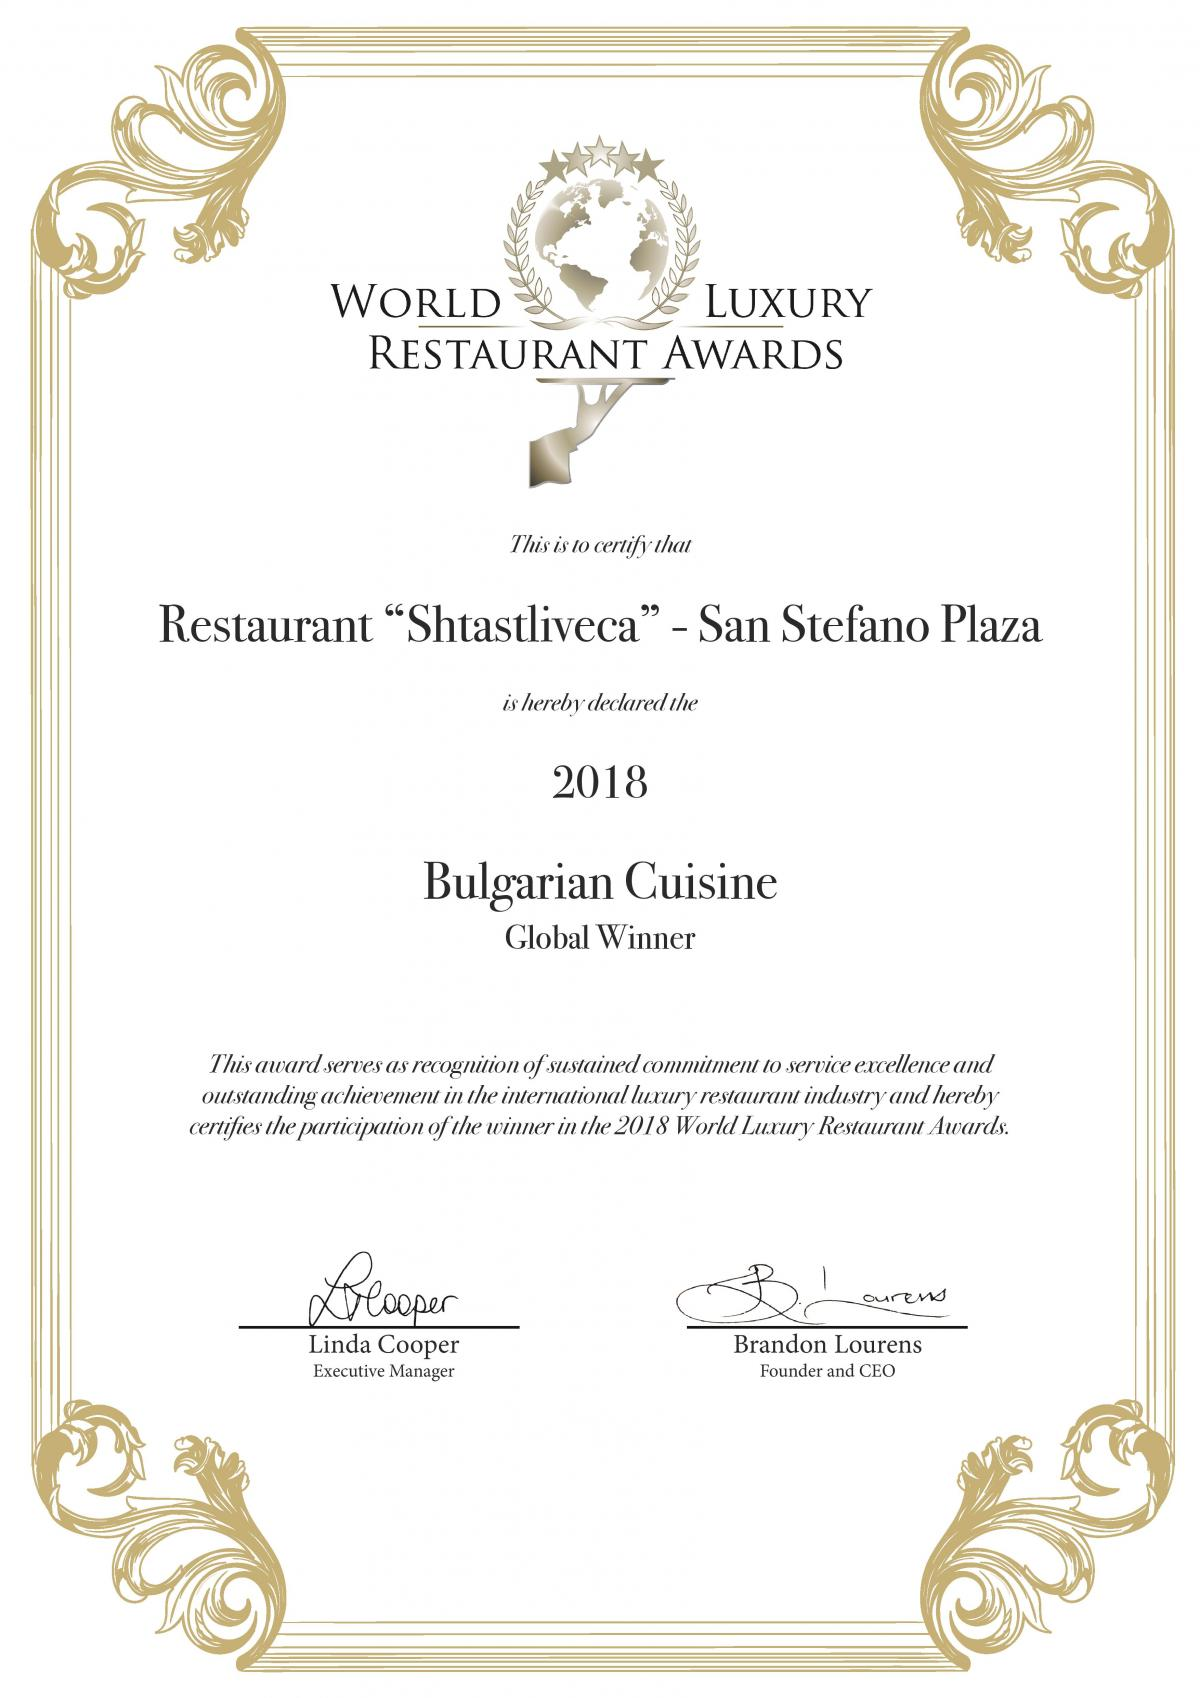 World Luxury Restaurants Awards - Bulgarian Cuisine Global Winner 2018